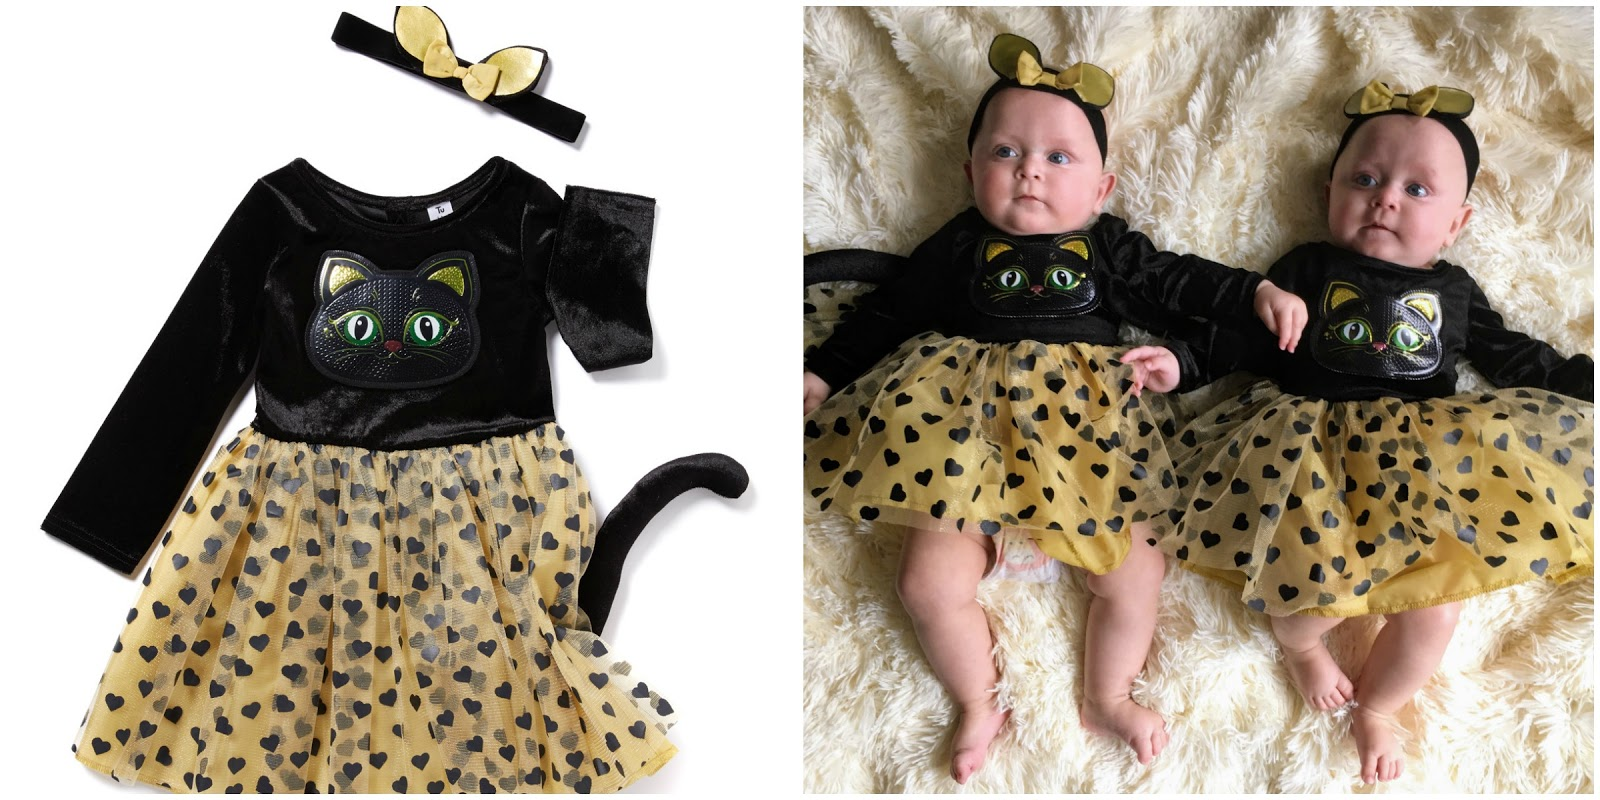 Halloween Costumes For Family Of 3 With A Baby.The Best Halloween Costumes For Baby Girls My Crazy Family